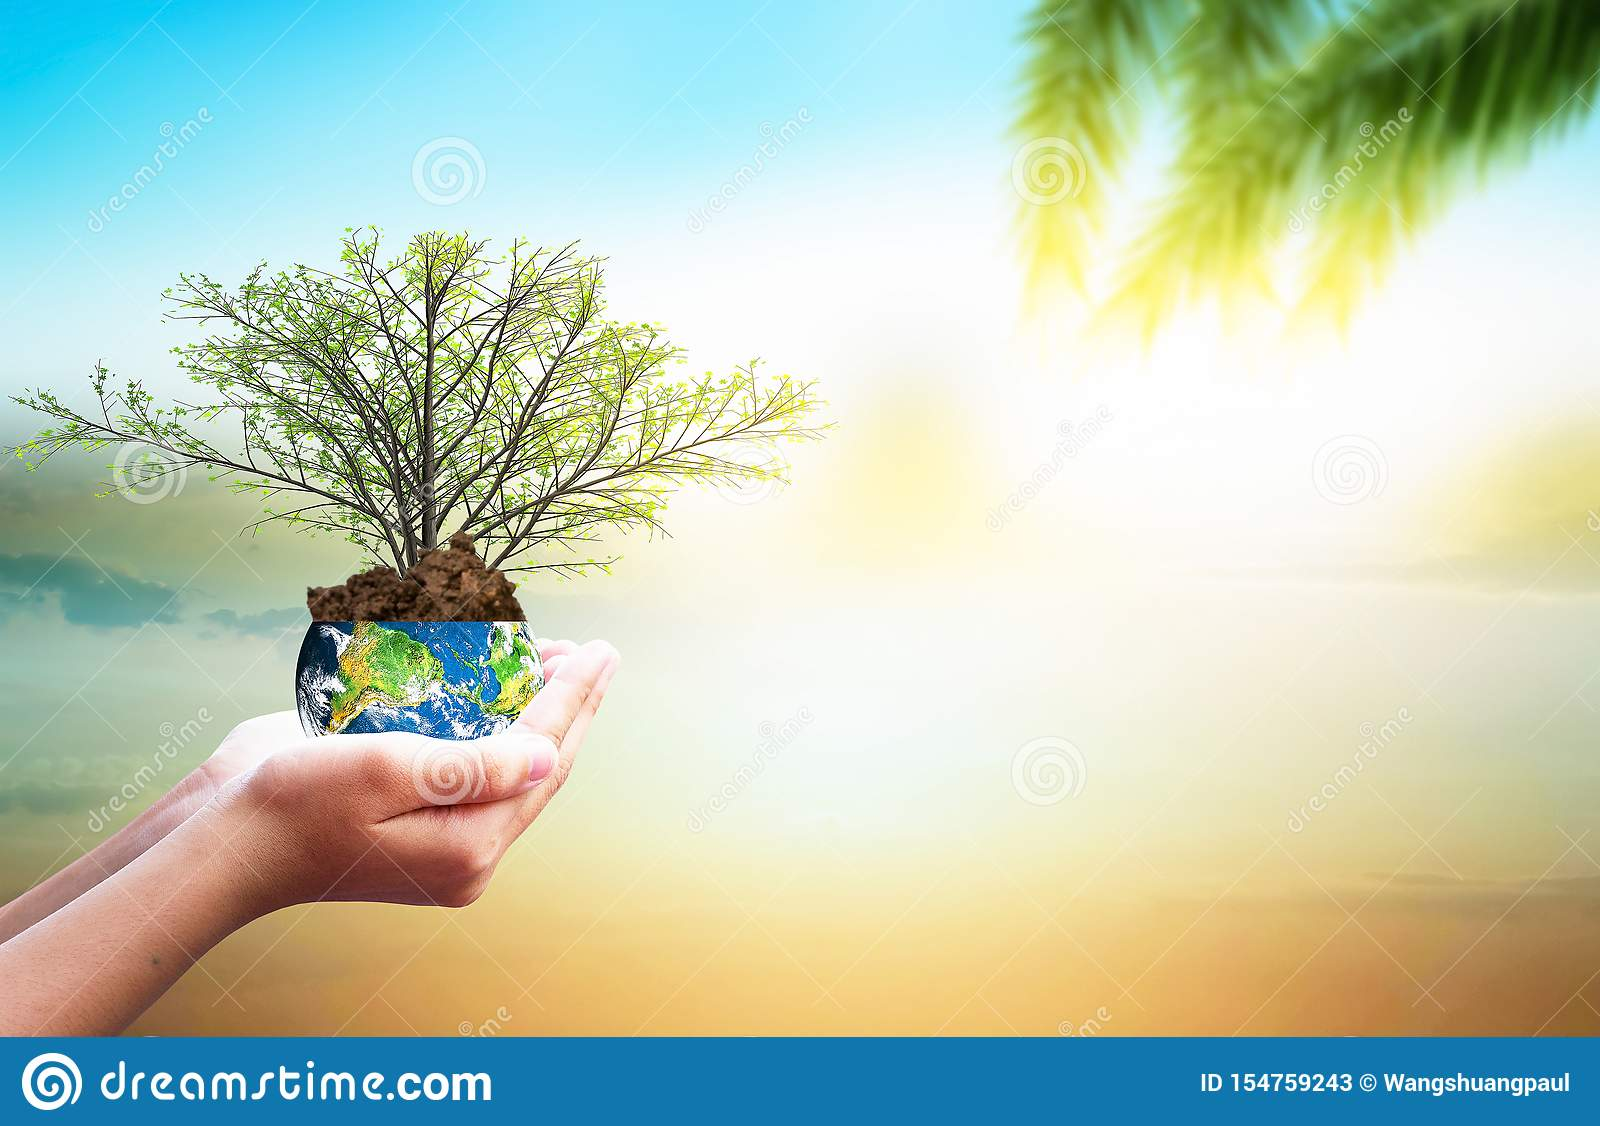 Earth Day Concept: Hand Holding Earth Globe And Tree Over ...